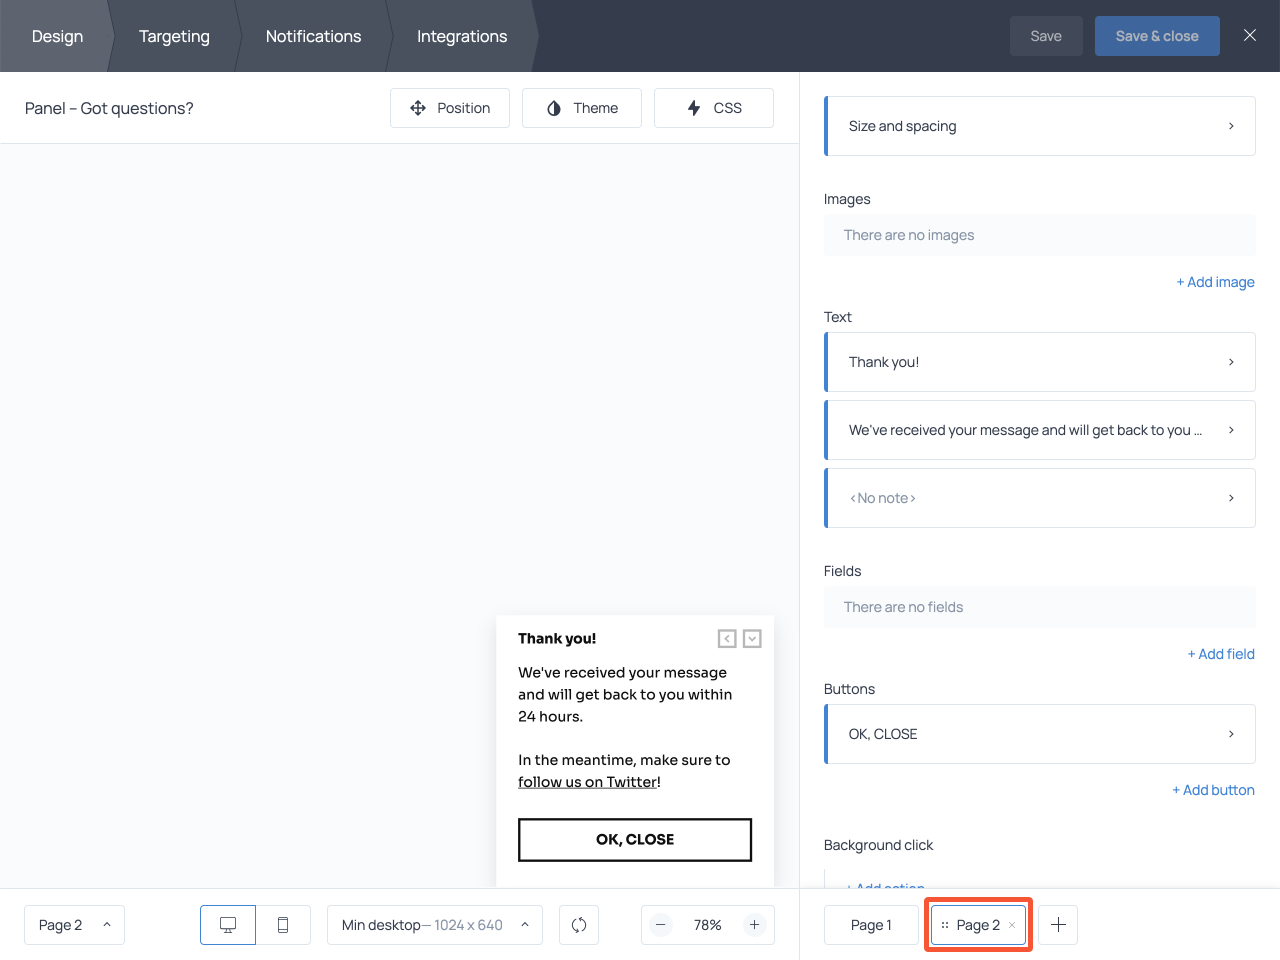 How to edit a submission success page in Getsitecontrol